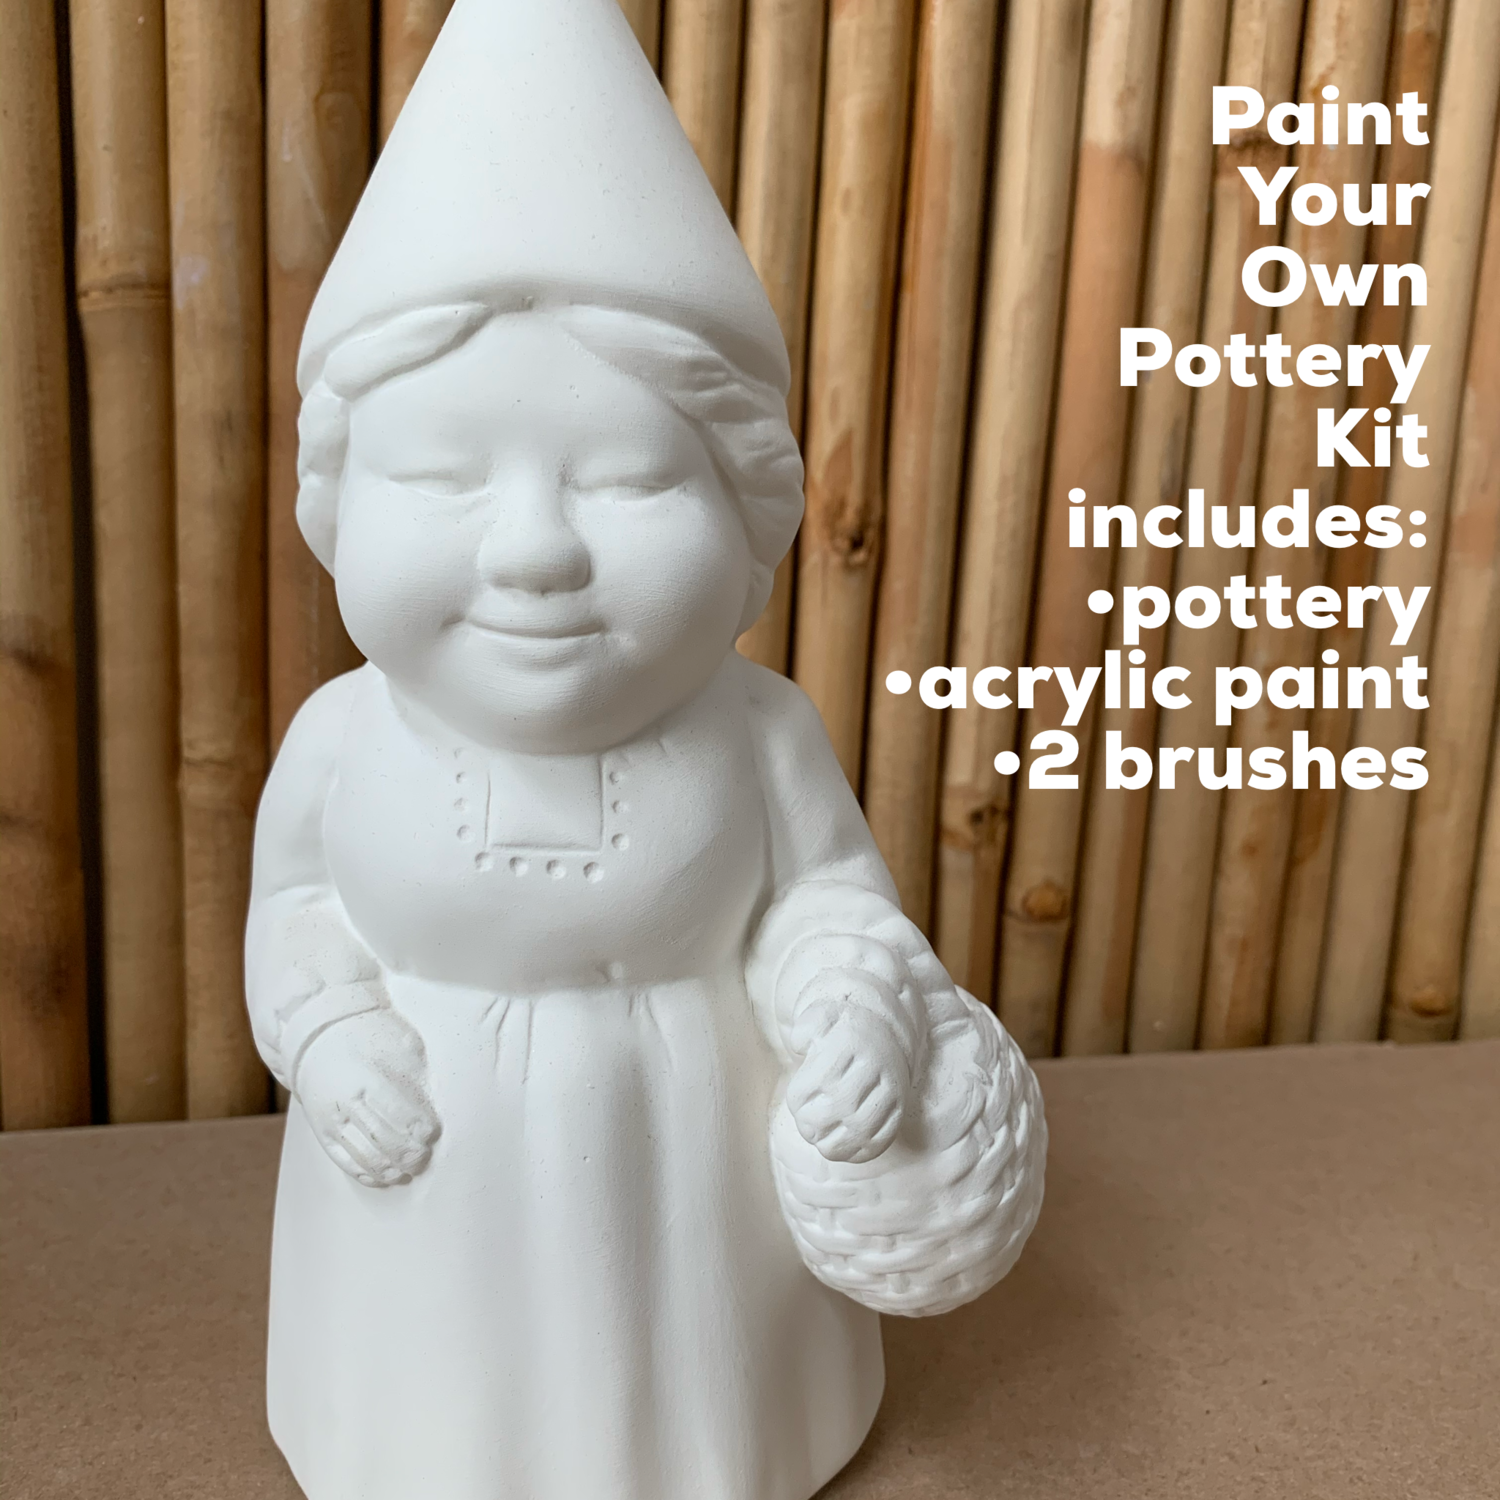 NO FIRE Paint Your Own Pottery Kit -  Ceramic Ms. Gnome Figurine Acrylic Painting Kit